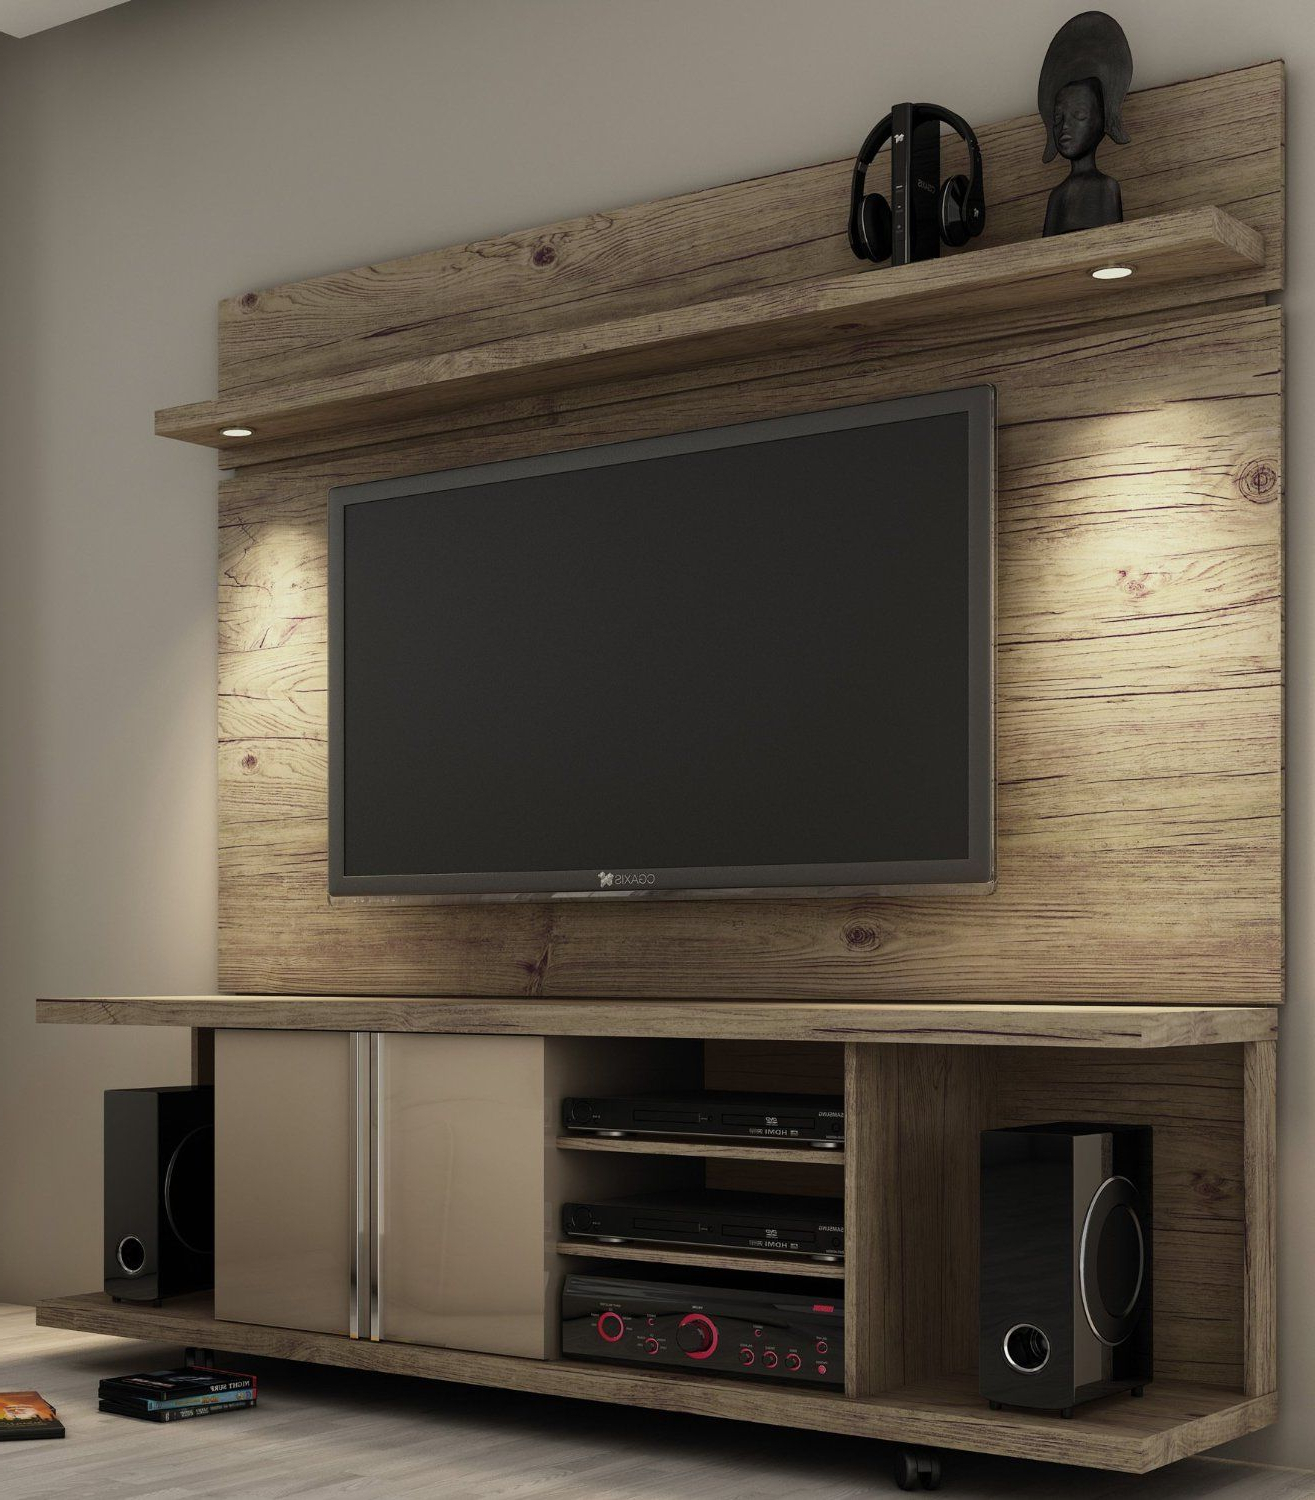 2017 Cato 60 Inch Tv Stands Pertaining To Have Pops Construct Something Like This For Me With Reclaimed Wood (Gallery 2 of 20)